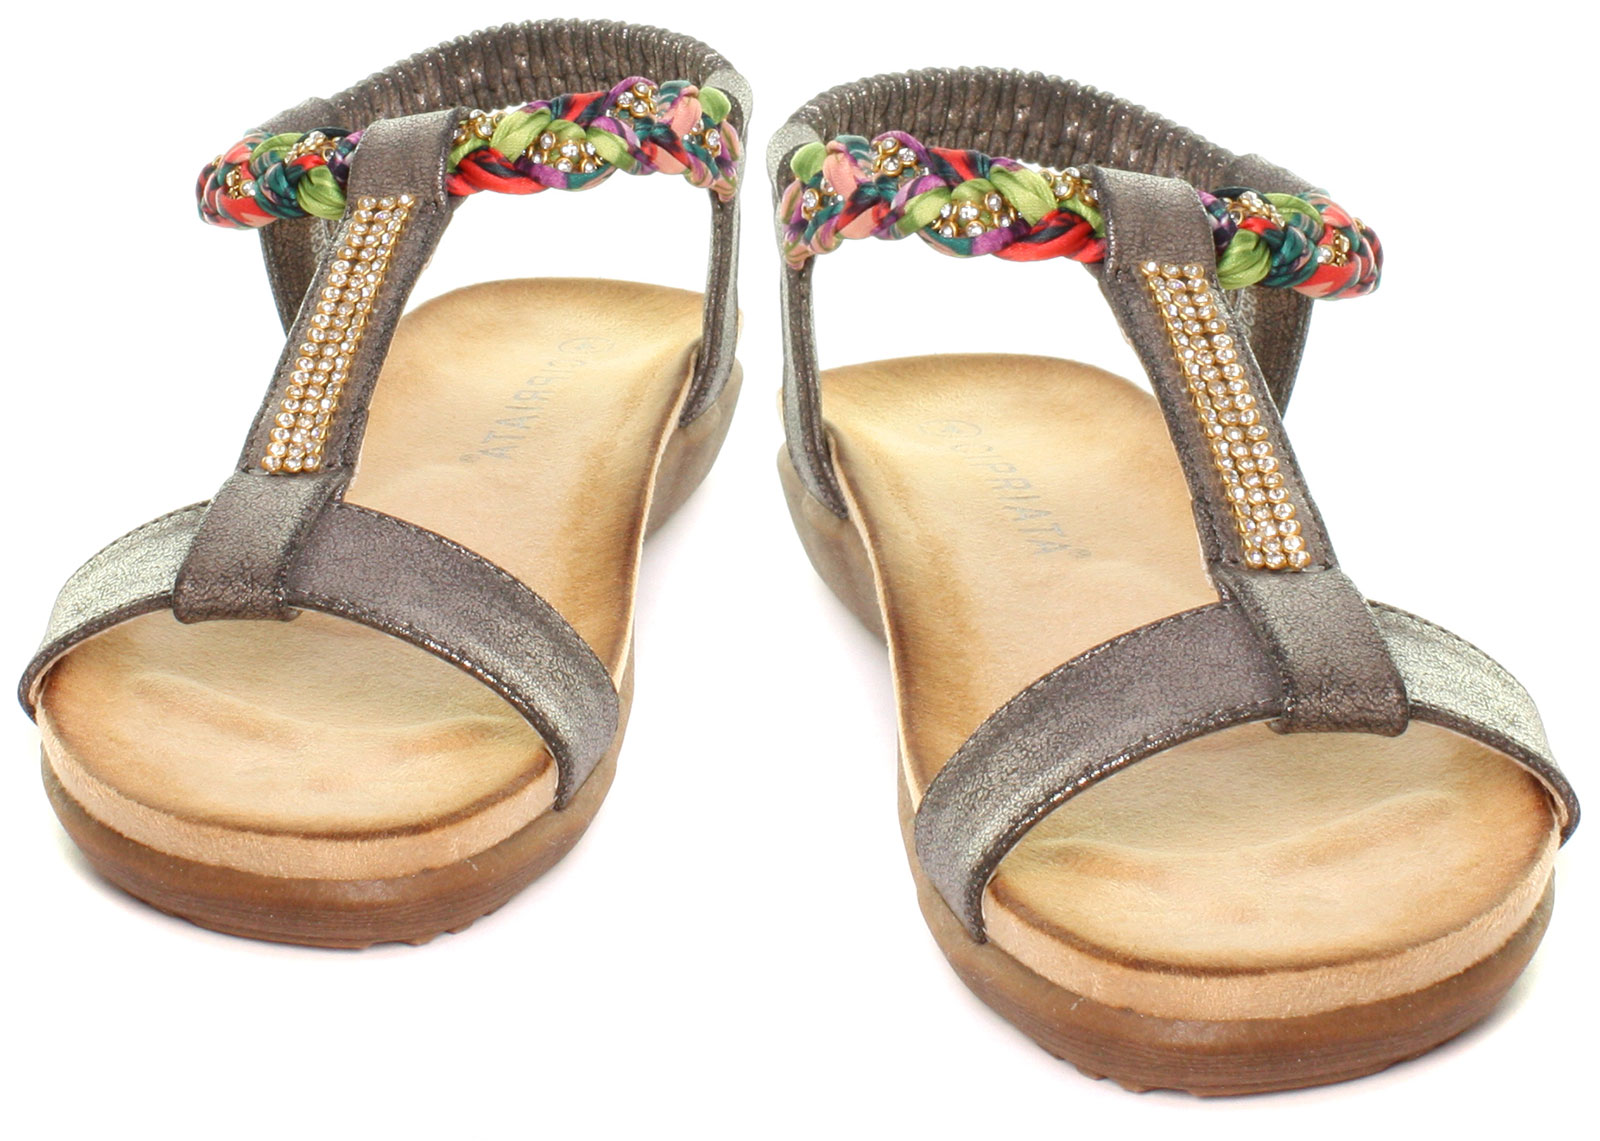 New-Cipriata-Gemma-Jewelled-Womens-Halter-Back-Sandals-ALL-SIZES-AND-COLOURS miniature 11